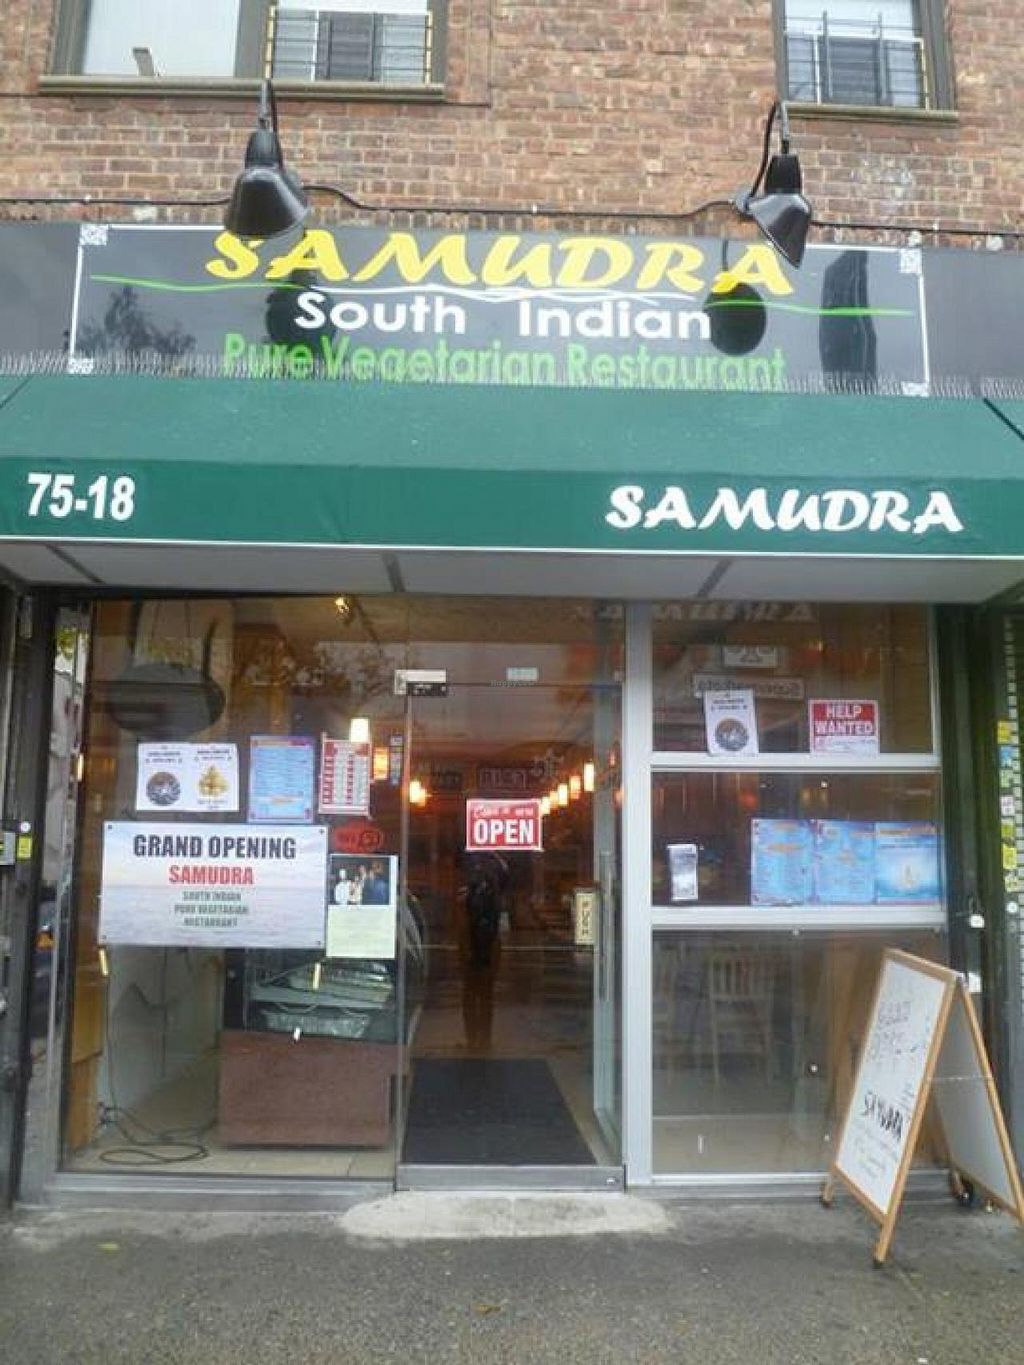 """Photo of Samudra Restaurant  by <a href=""""/members/profile/community"""">community</a> <br/>Samudra Restaurant <br/> July 7, 2014  - <a href='/contact/abuse/image/48672/73419'>Report</a>"""